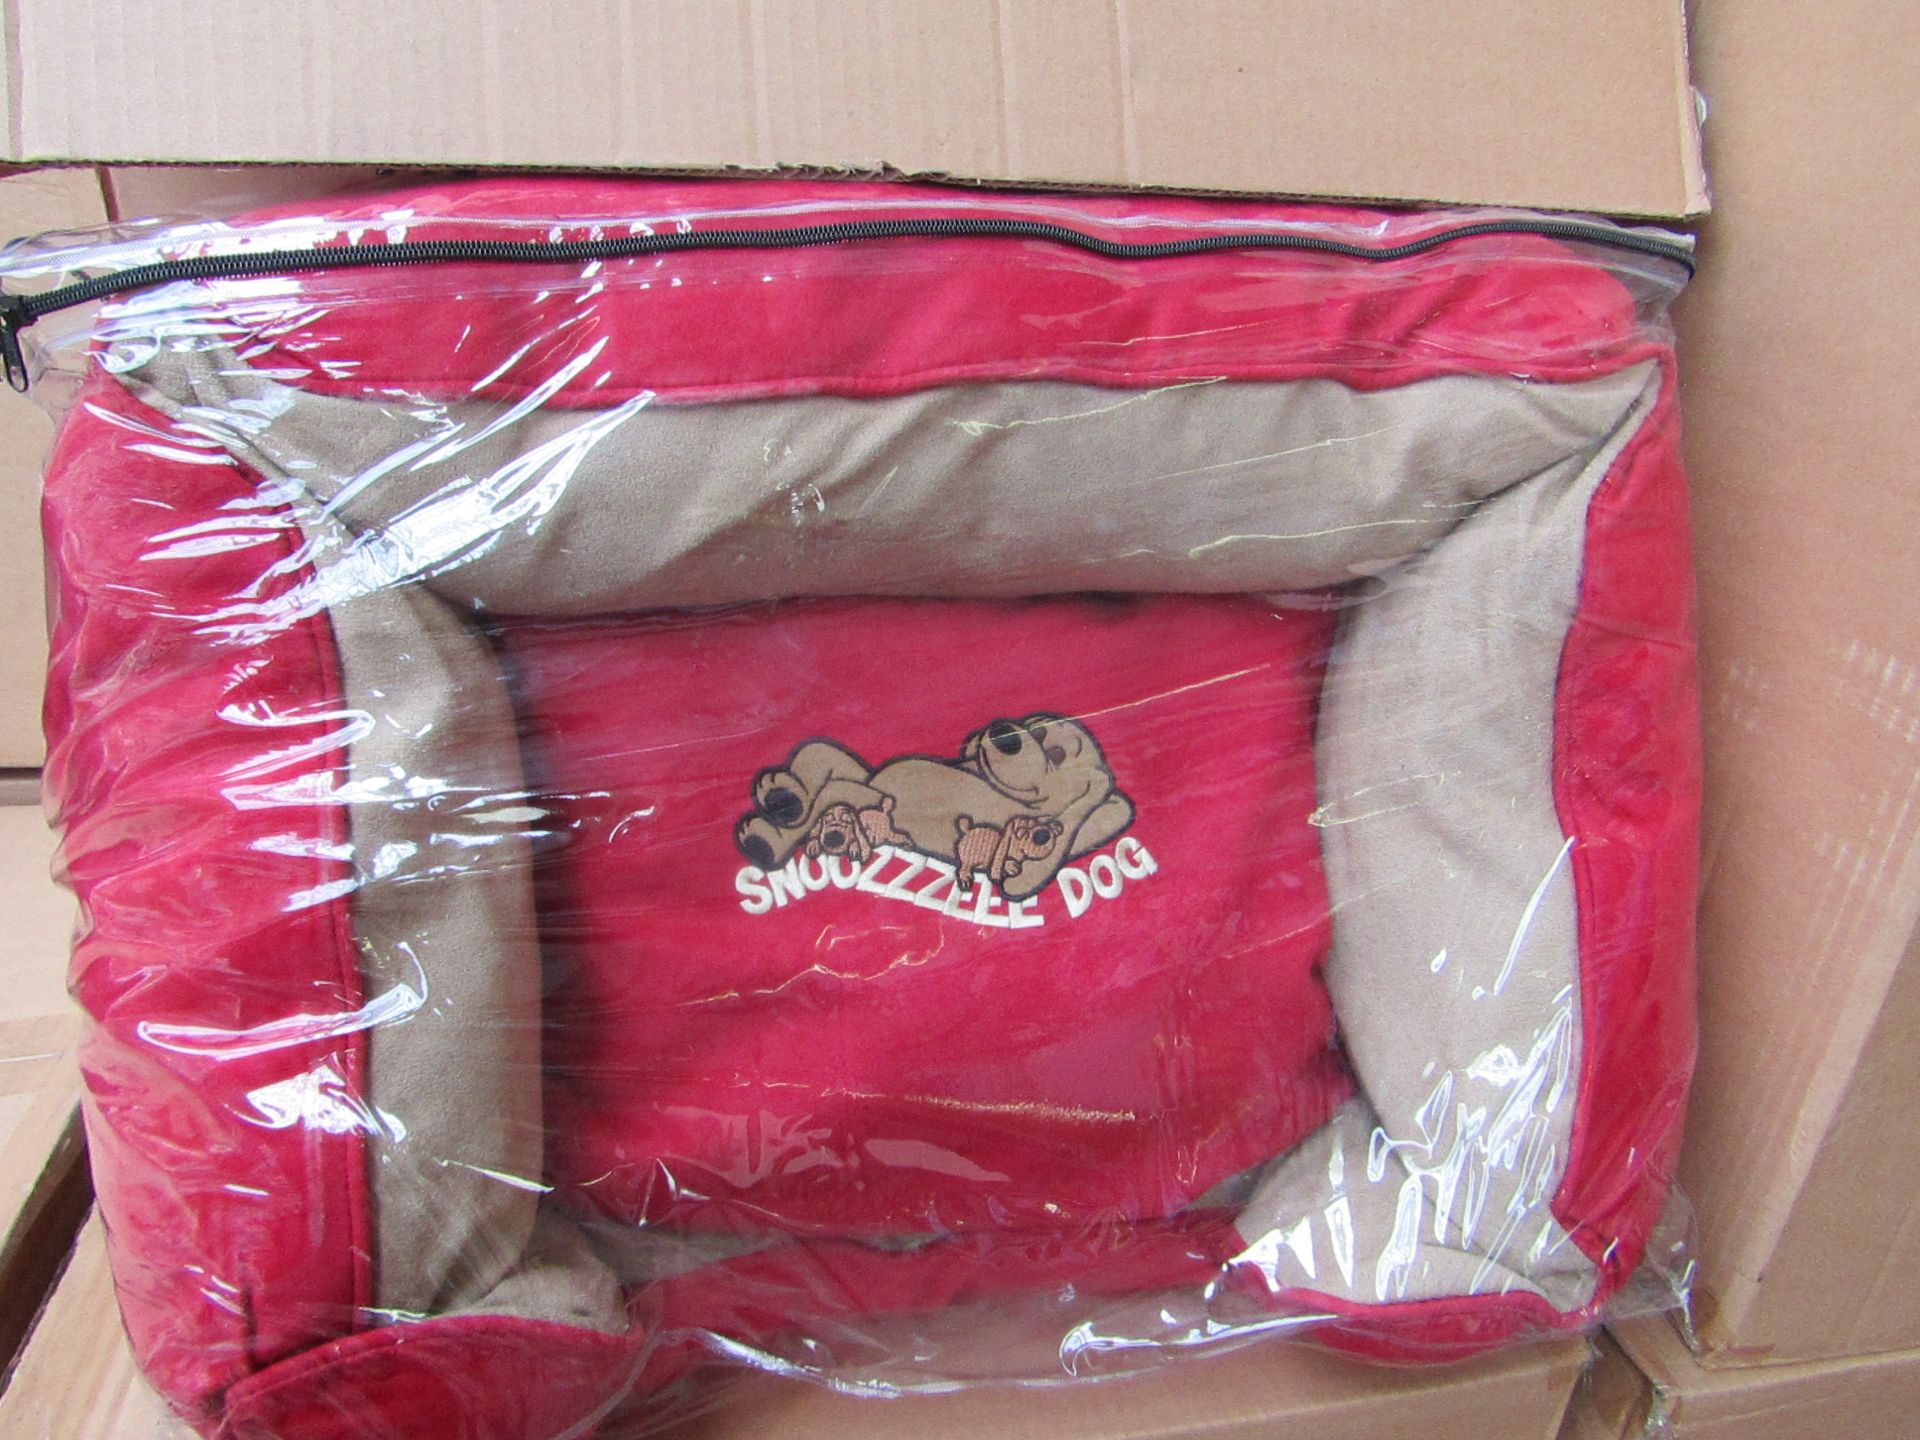 """5x Snoozzzeee Dog - Cherry Red Sofa Dog Bed (23"""") - All New & Packaged."""